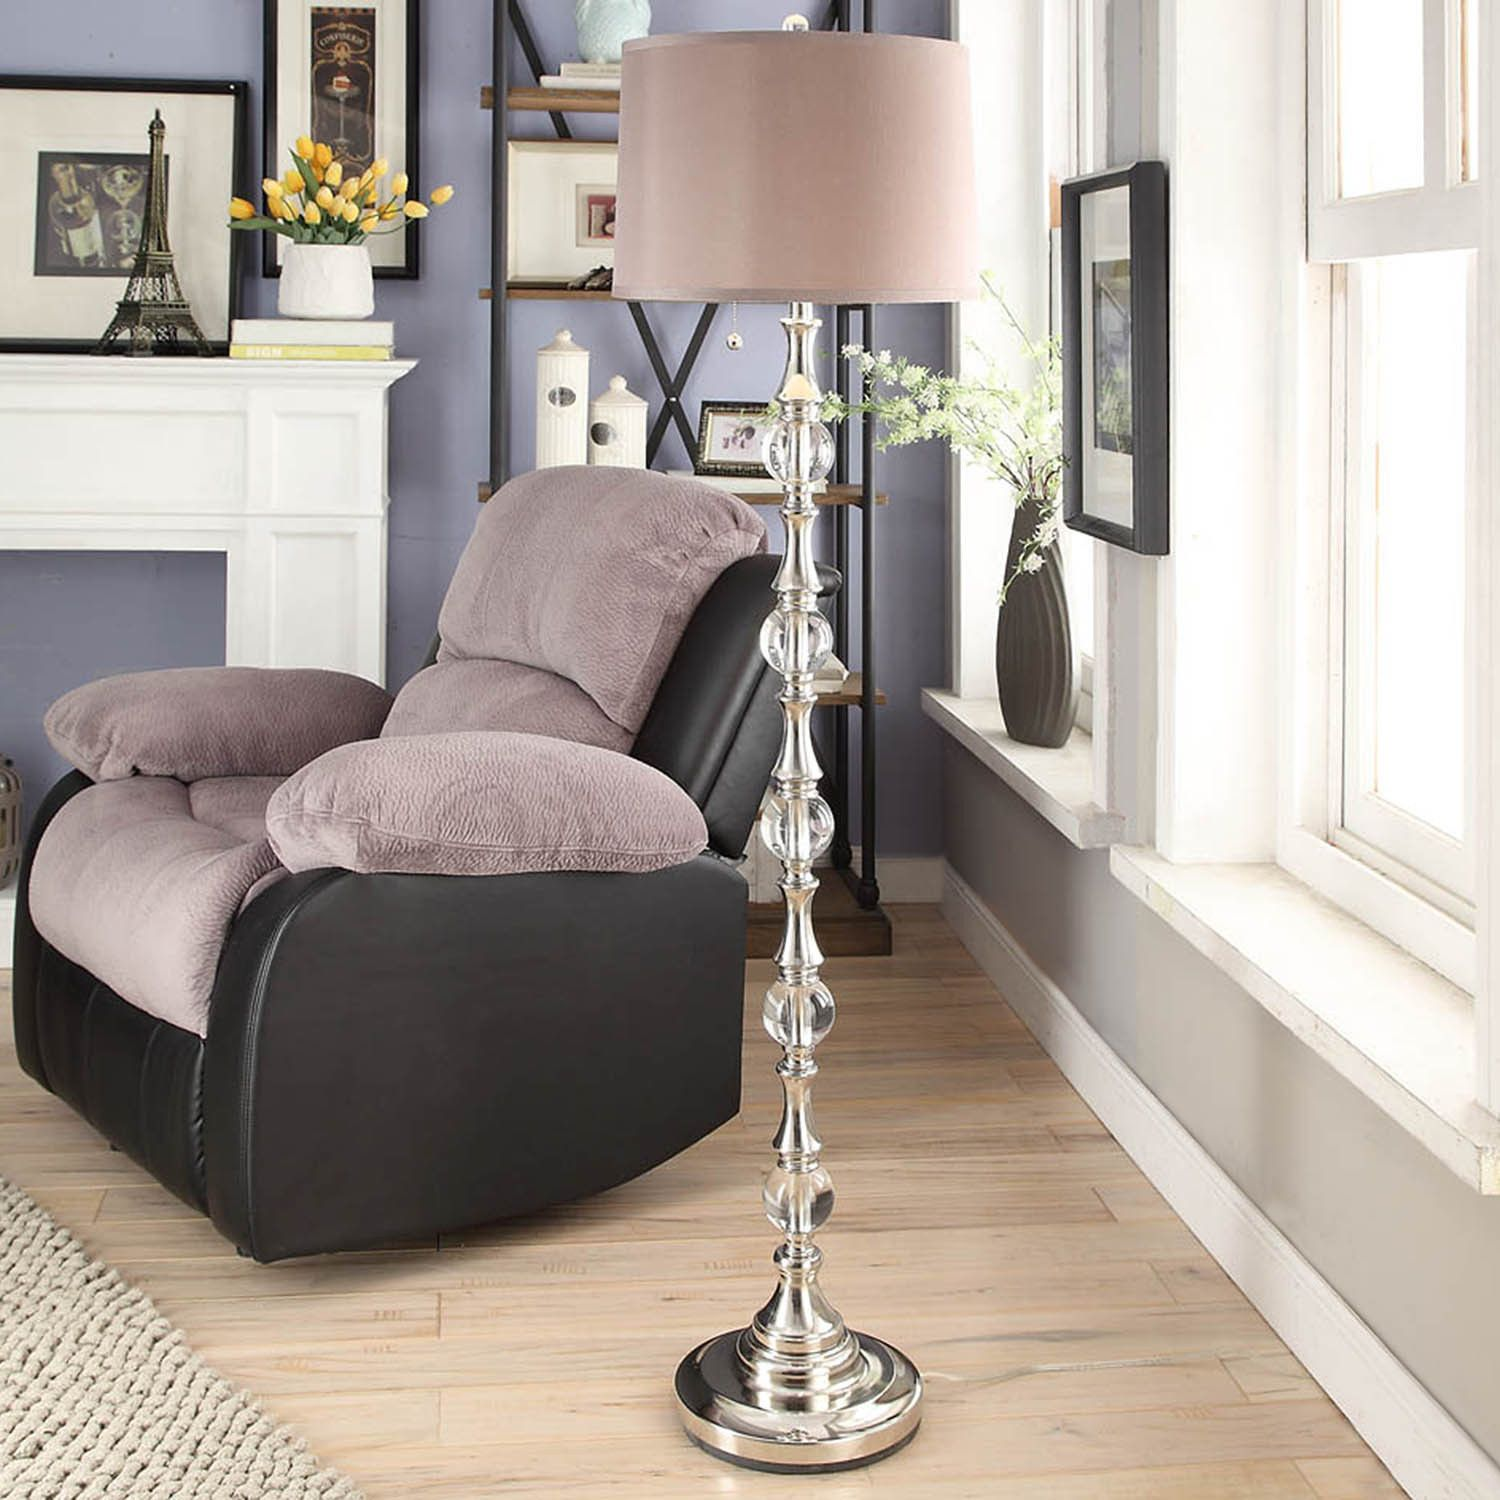 Alric Glass Orb 2-light Accent Floor Lamp by iNSPIRE Q Classic by iNSPIRE Q